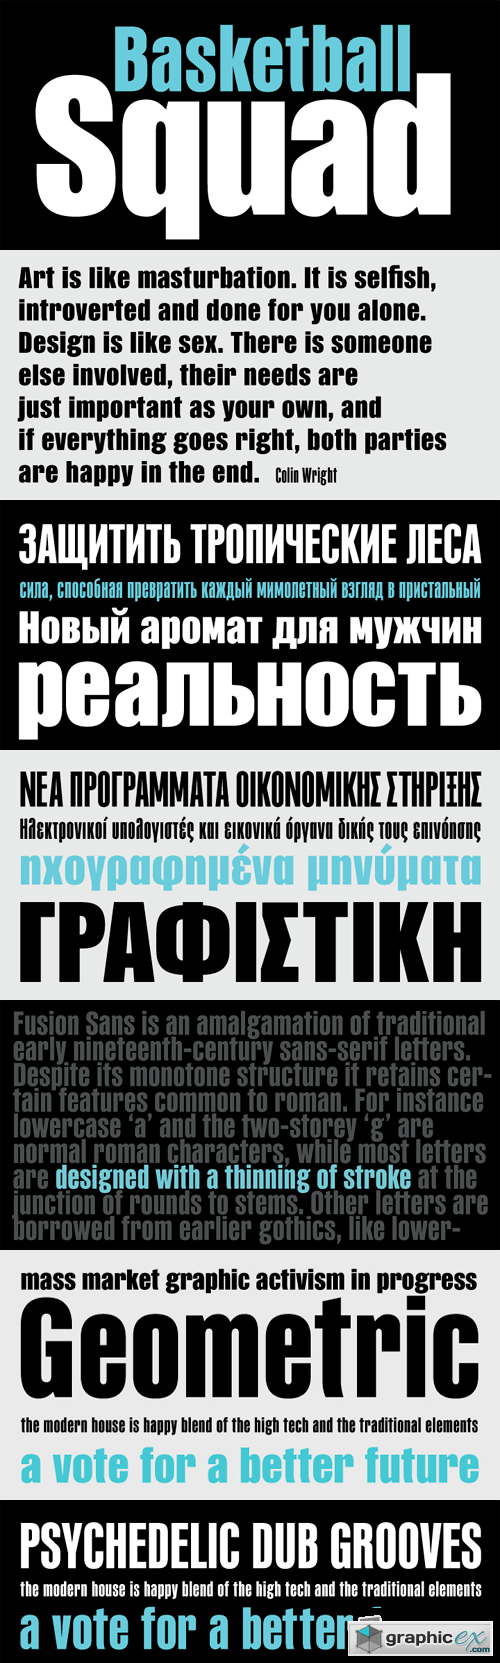 PF Fusion Sans Pro Font Family - 4 Fonts for $275